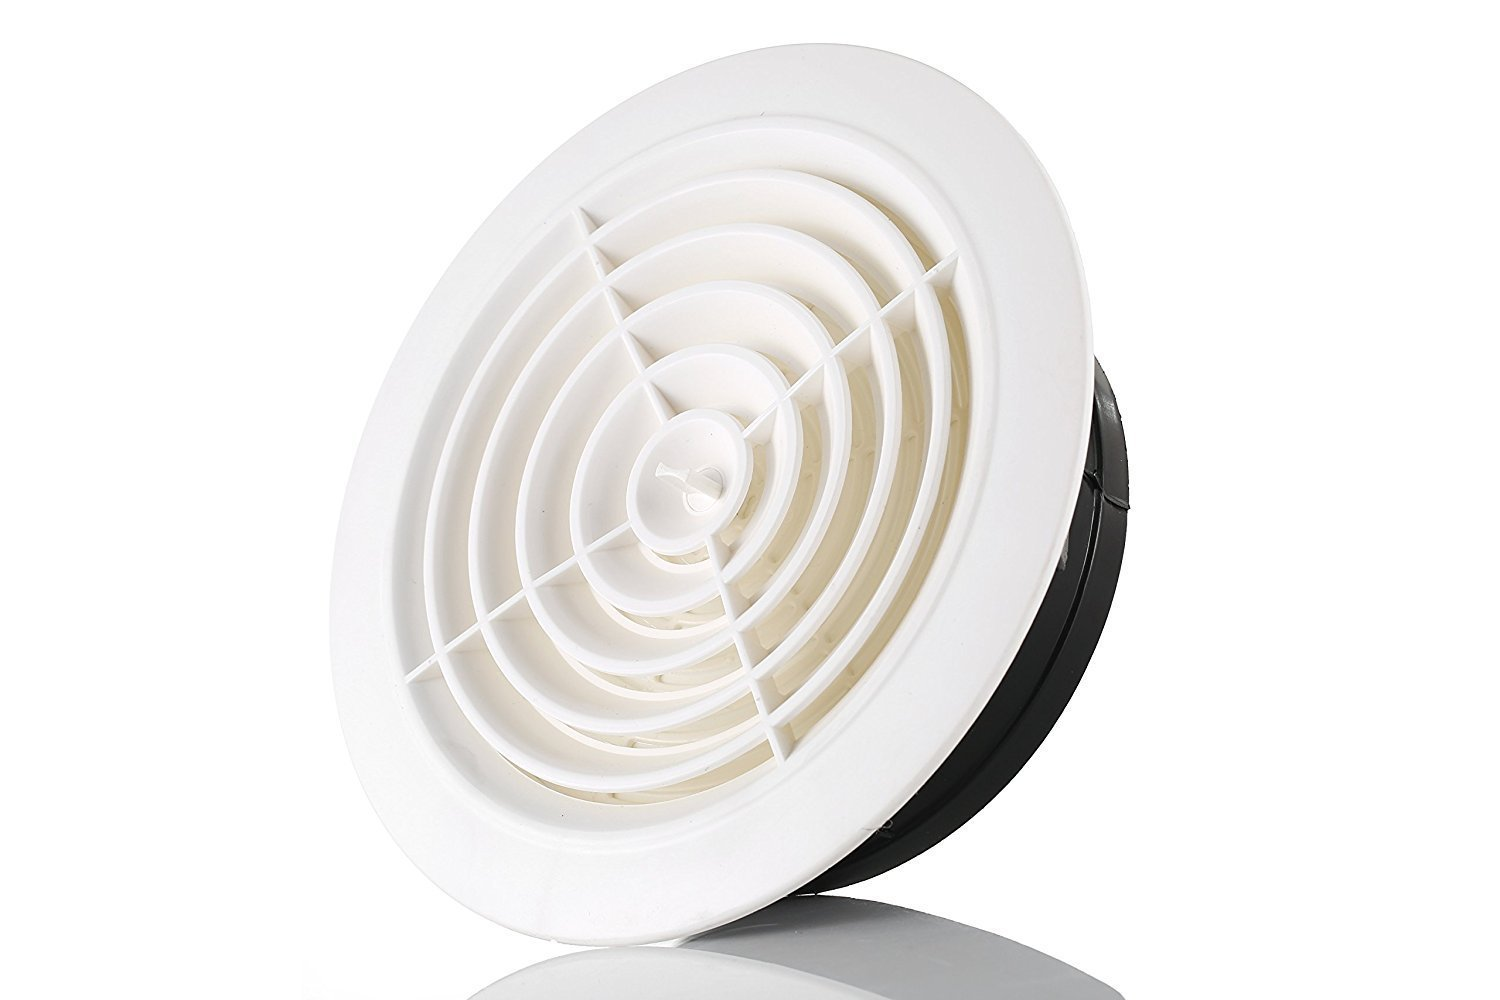 HG POWER 8 Inch Round Air Vent ABS Louver White Grille Cover Adjustable Exhaust Vent Fit for Bathroom Office Kitchen Ventilation